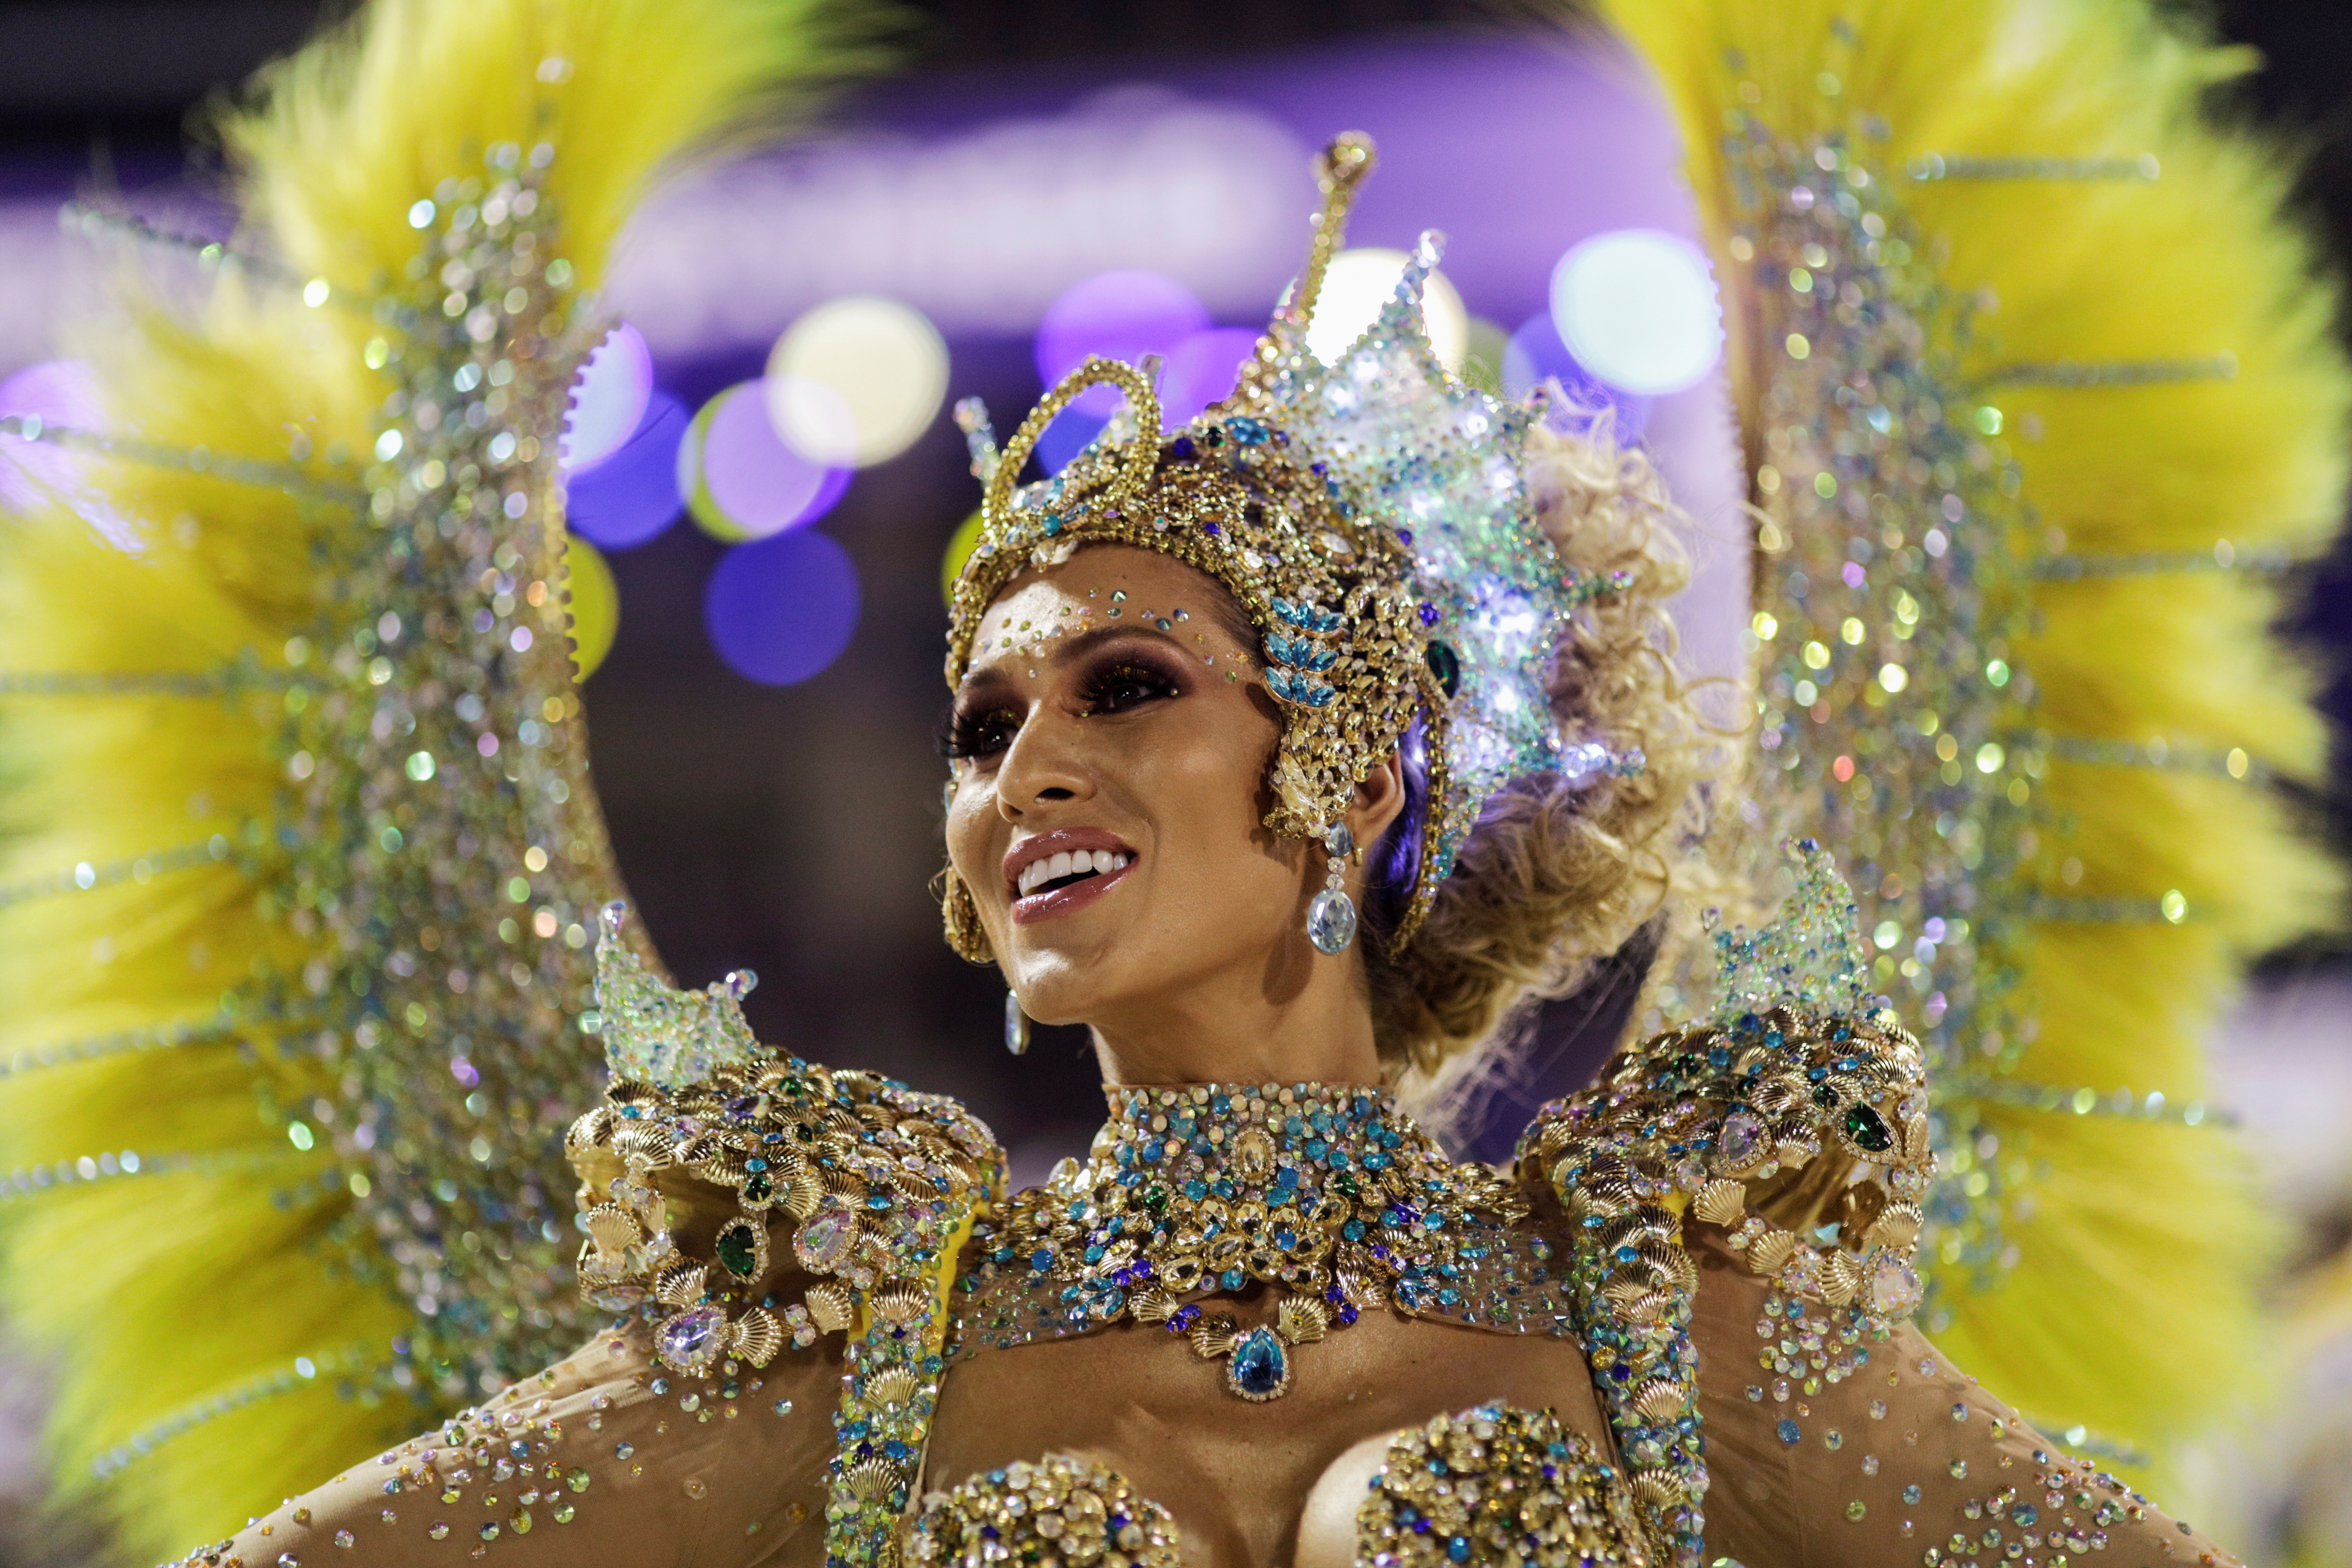 Drum queen Livia Andrade of Paraiso do Tuiuti samba school looks on during the first night of the Carnival parade at the Sambadrome in Rio de Janeiro, Brazil February 24, 2020. REUTERS/Ricardo Moraes